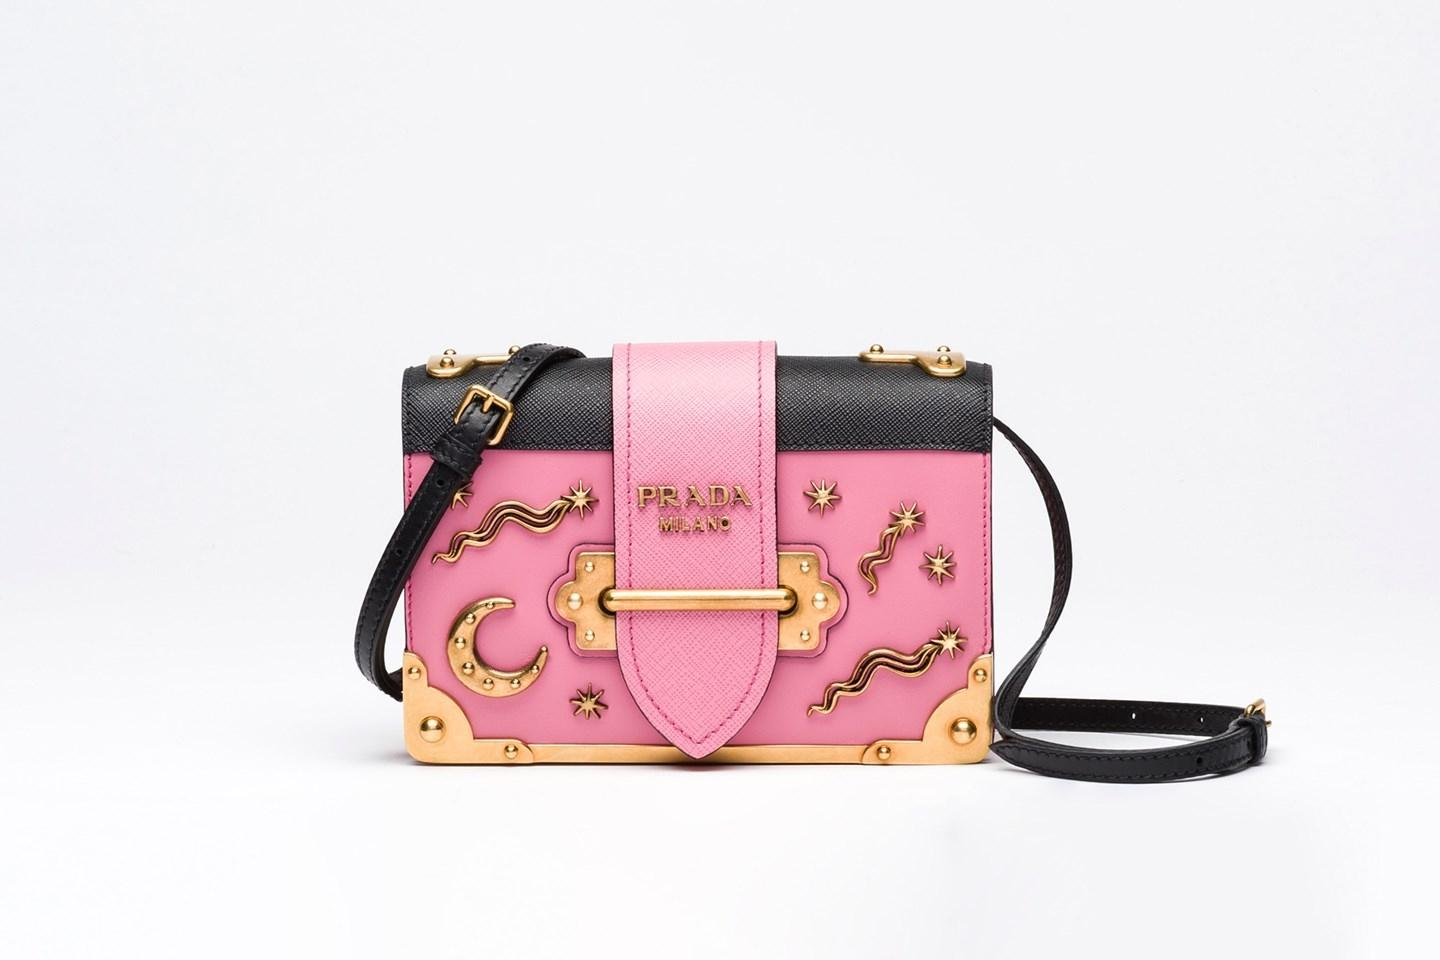 Sold Out Cahier Embellished Moon And Stars Leather Pink Cross Body Bag -  Replica Prada Bags on Sale From Manufactures Outlet 5b4978d7a4d5a